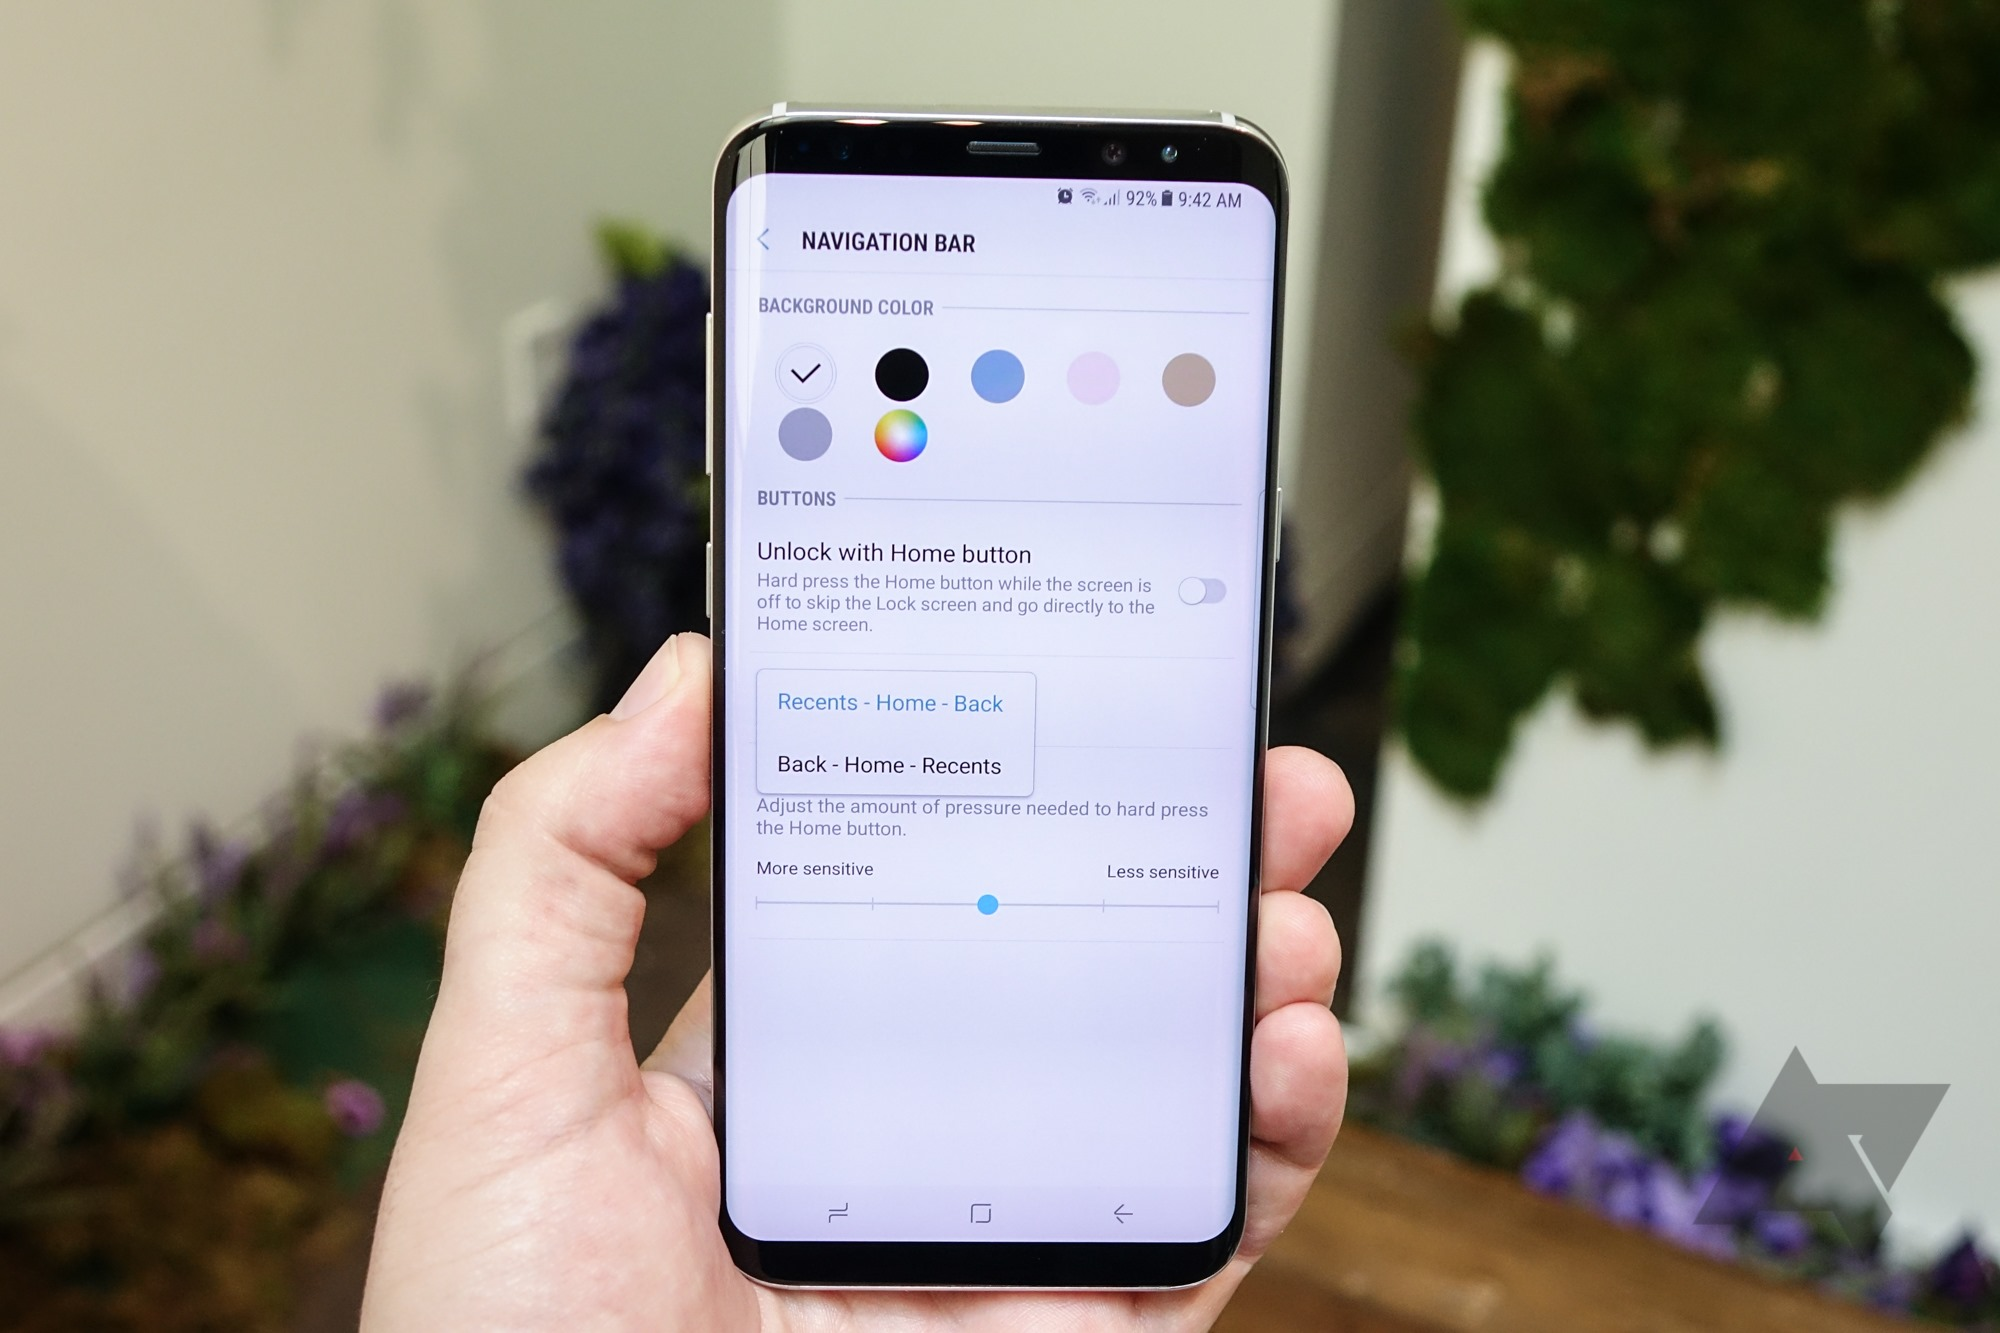 The Galaxy S8 has configurable virtual navigation buttons - and an